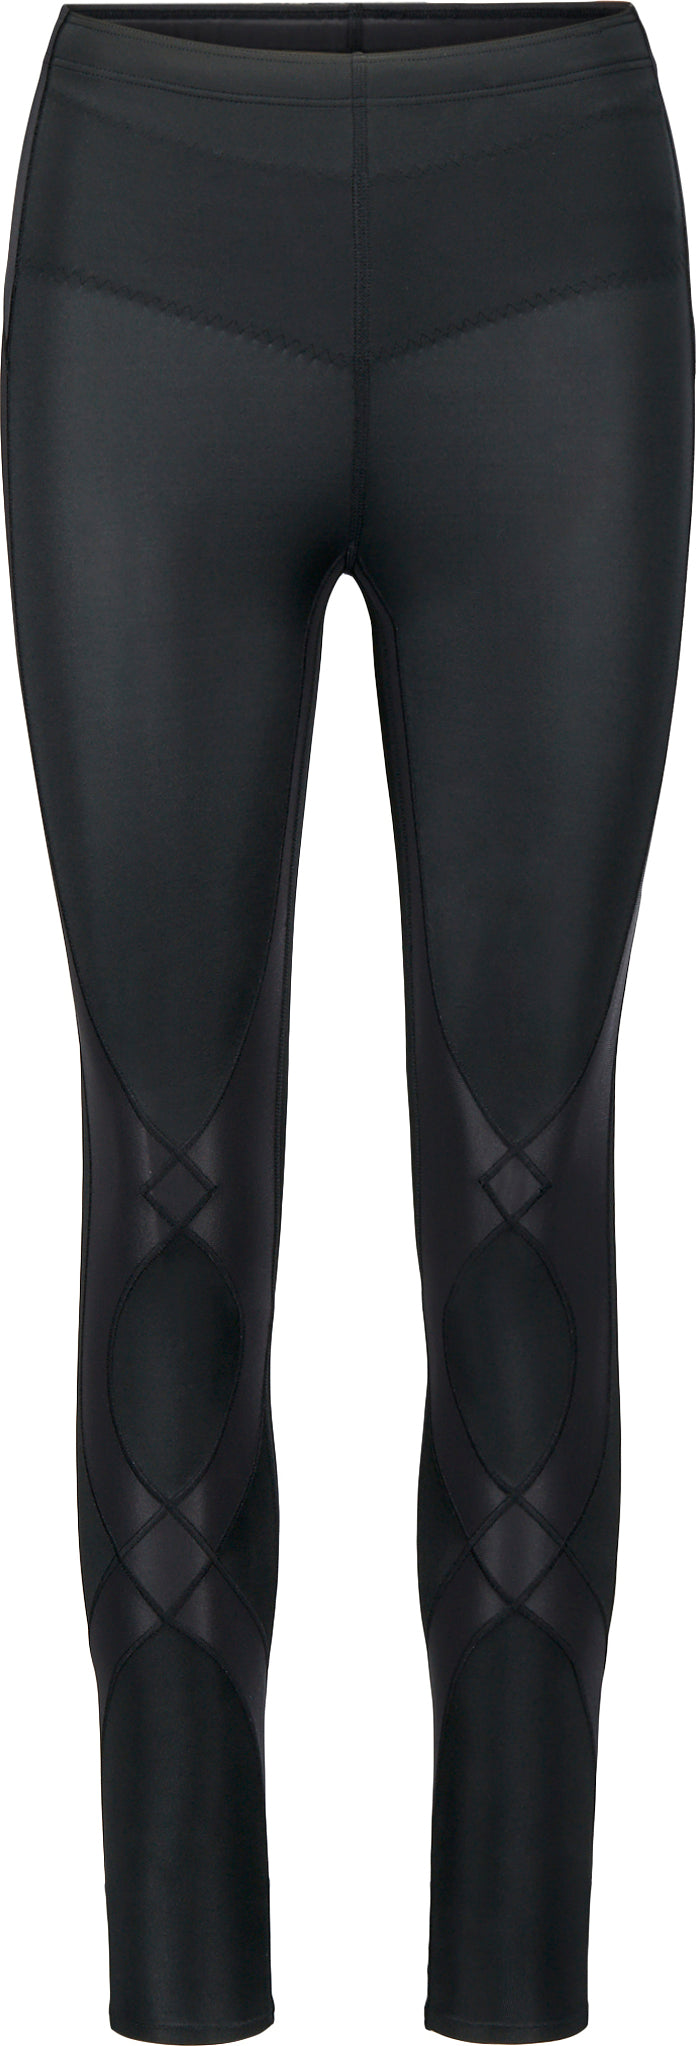 d193322b6 Cw X Conditioning Wear Stabilyx Tights - Women s